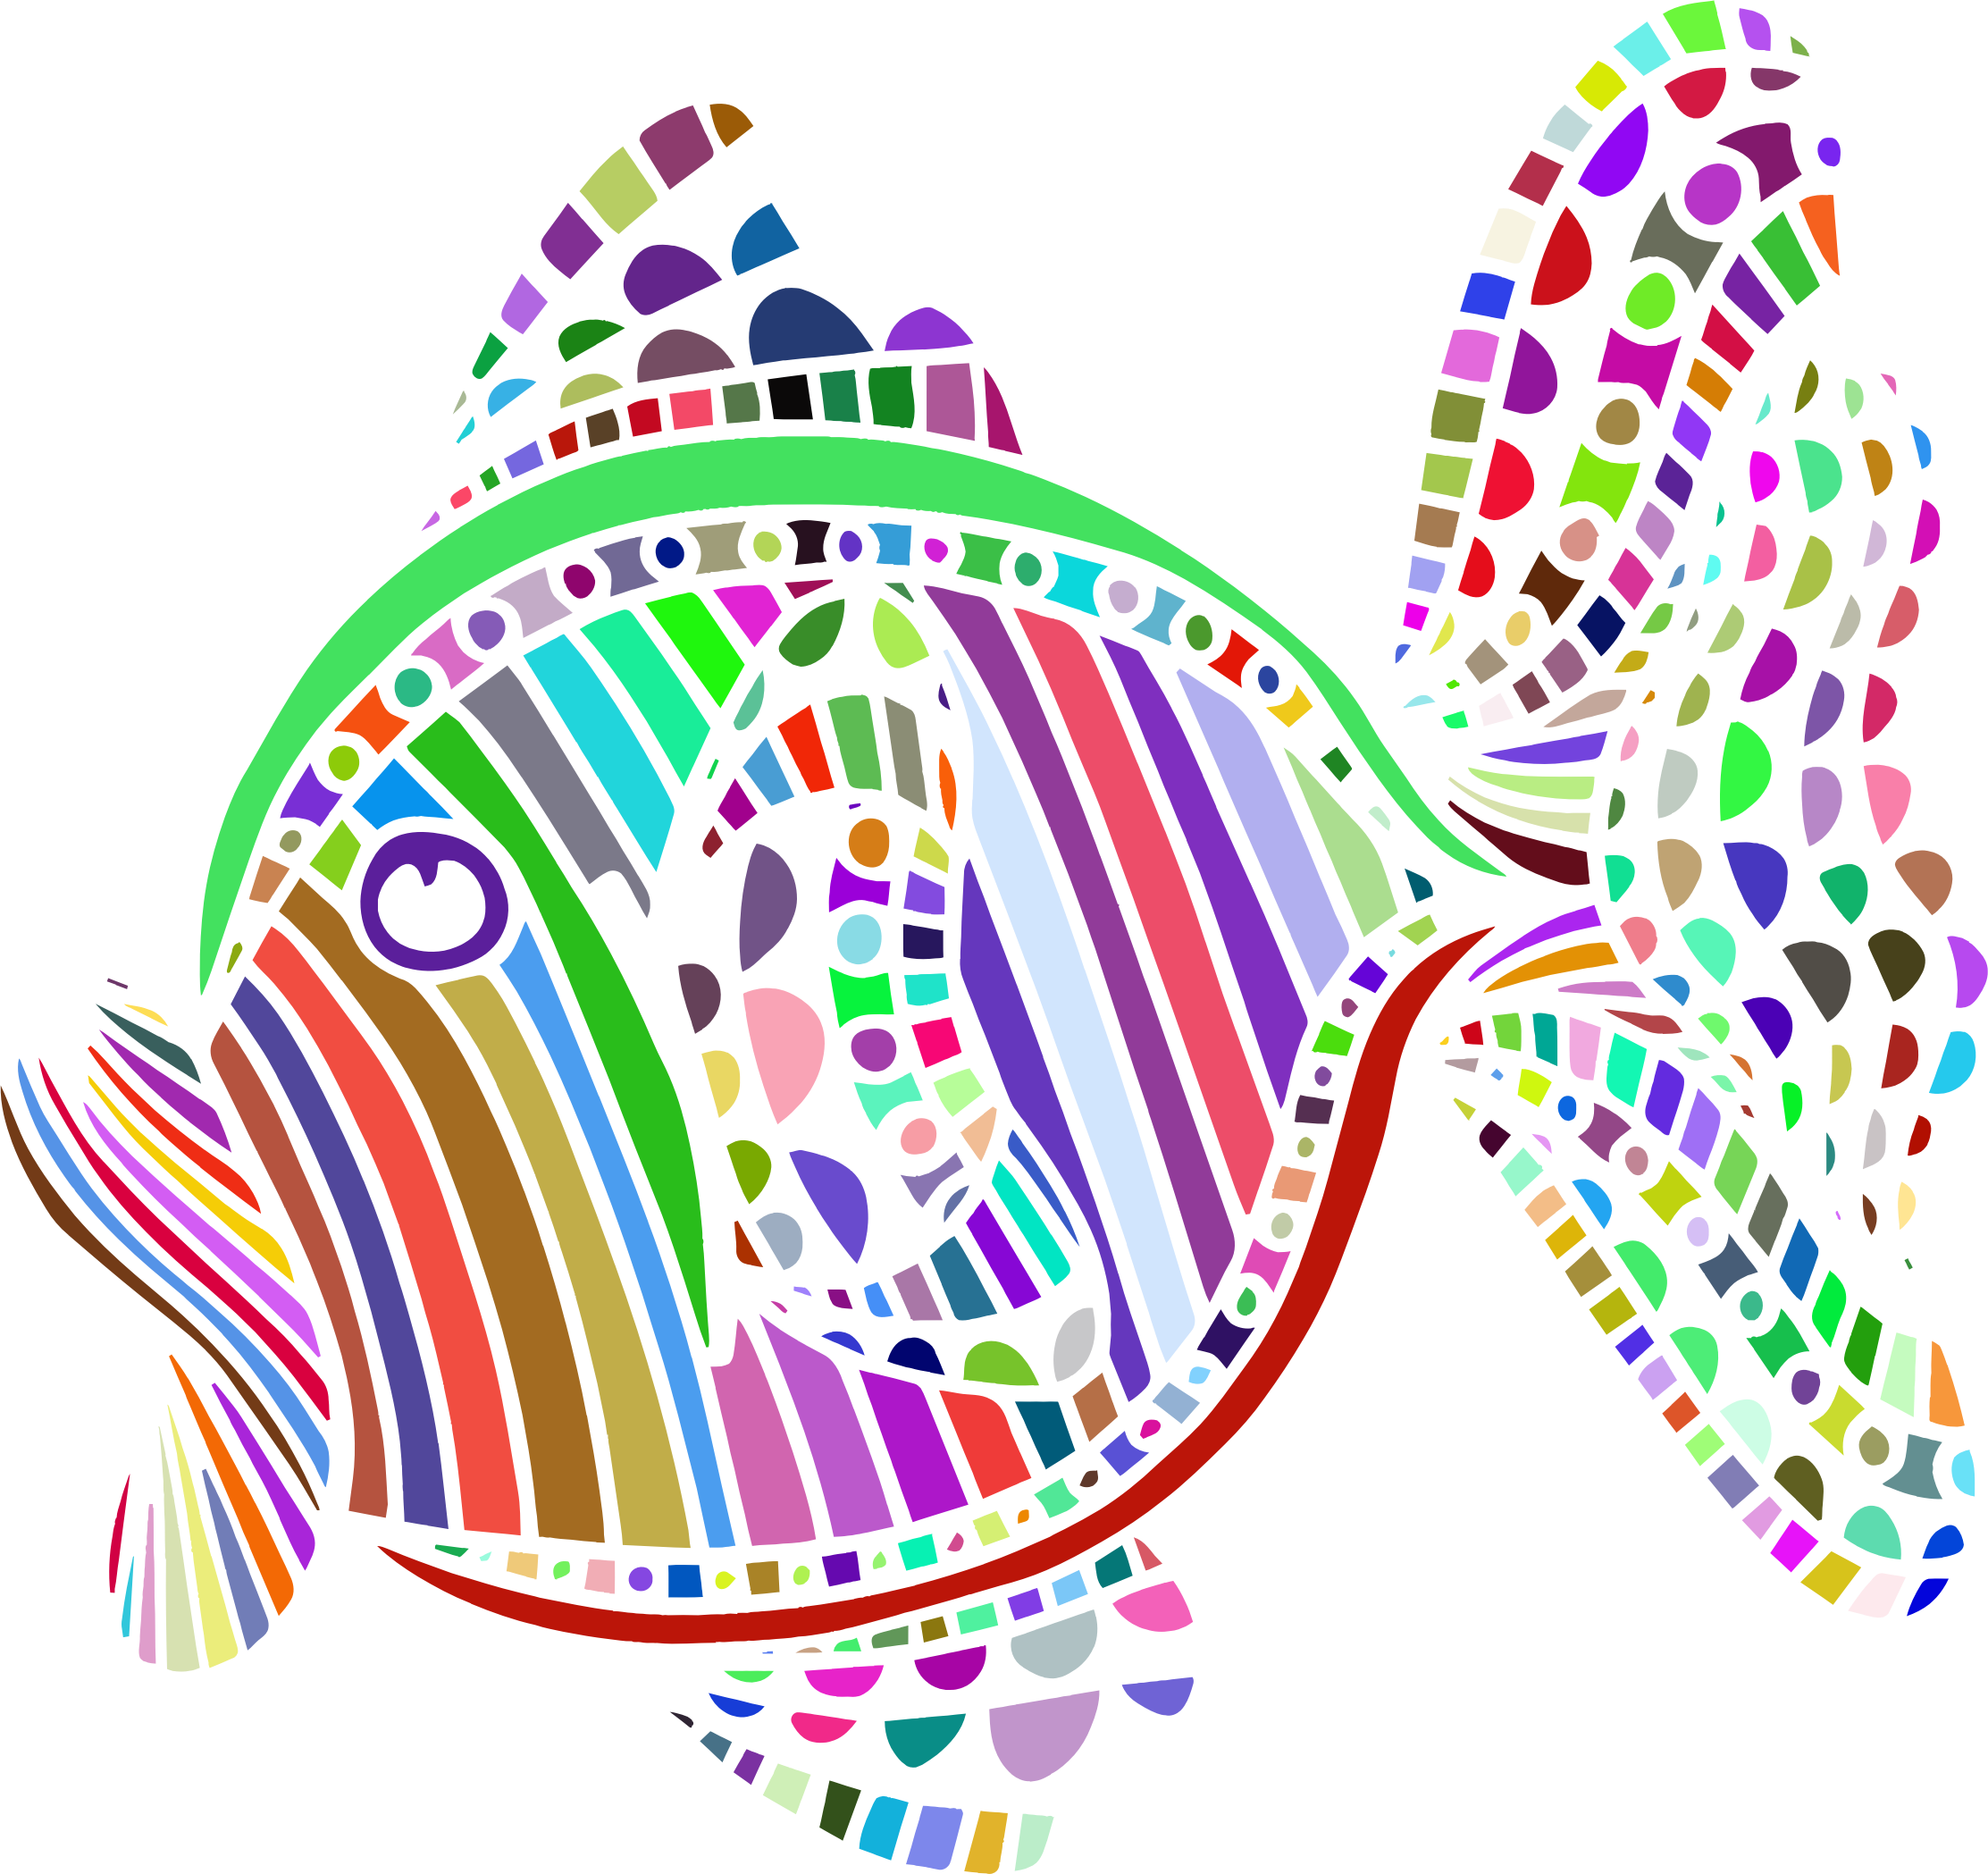 Charming design colorful fish. Dreaming clipart abstract